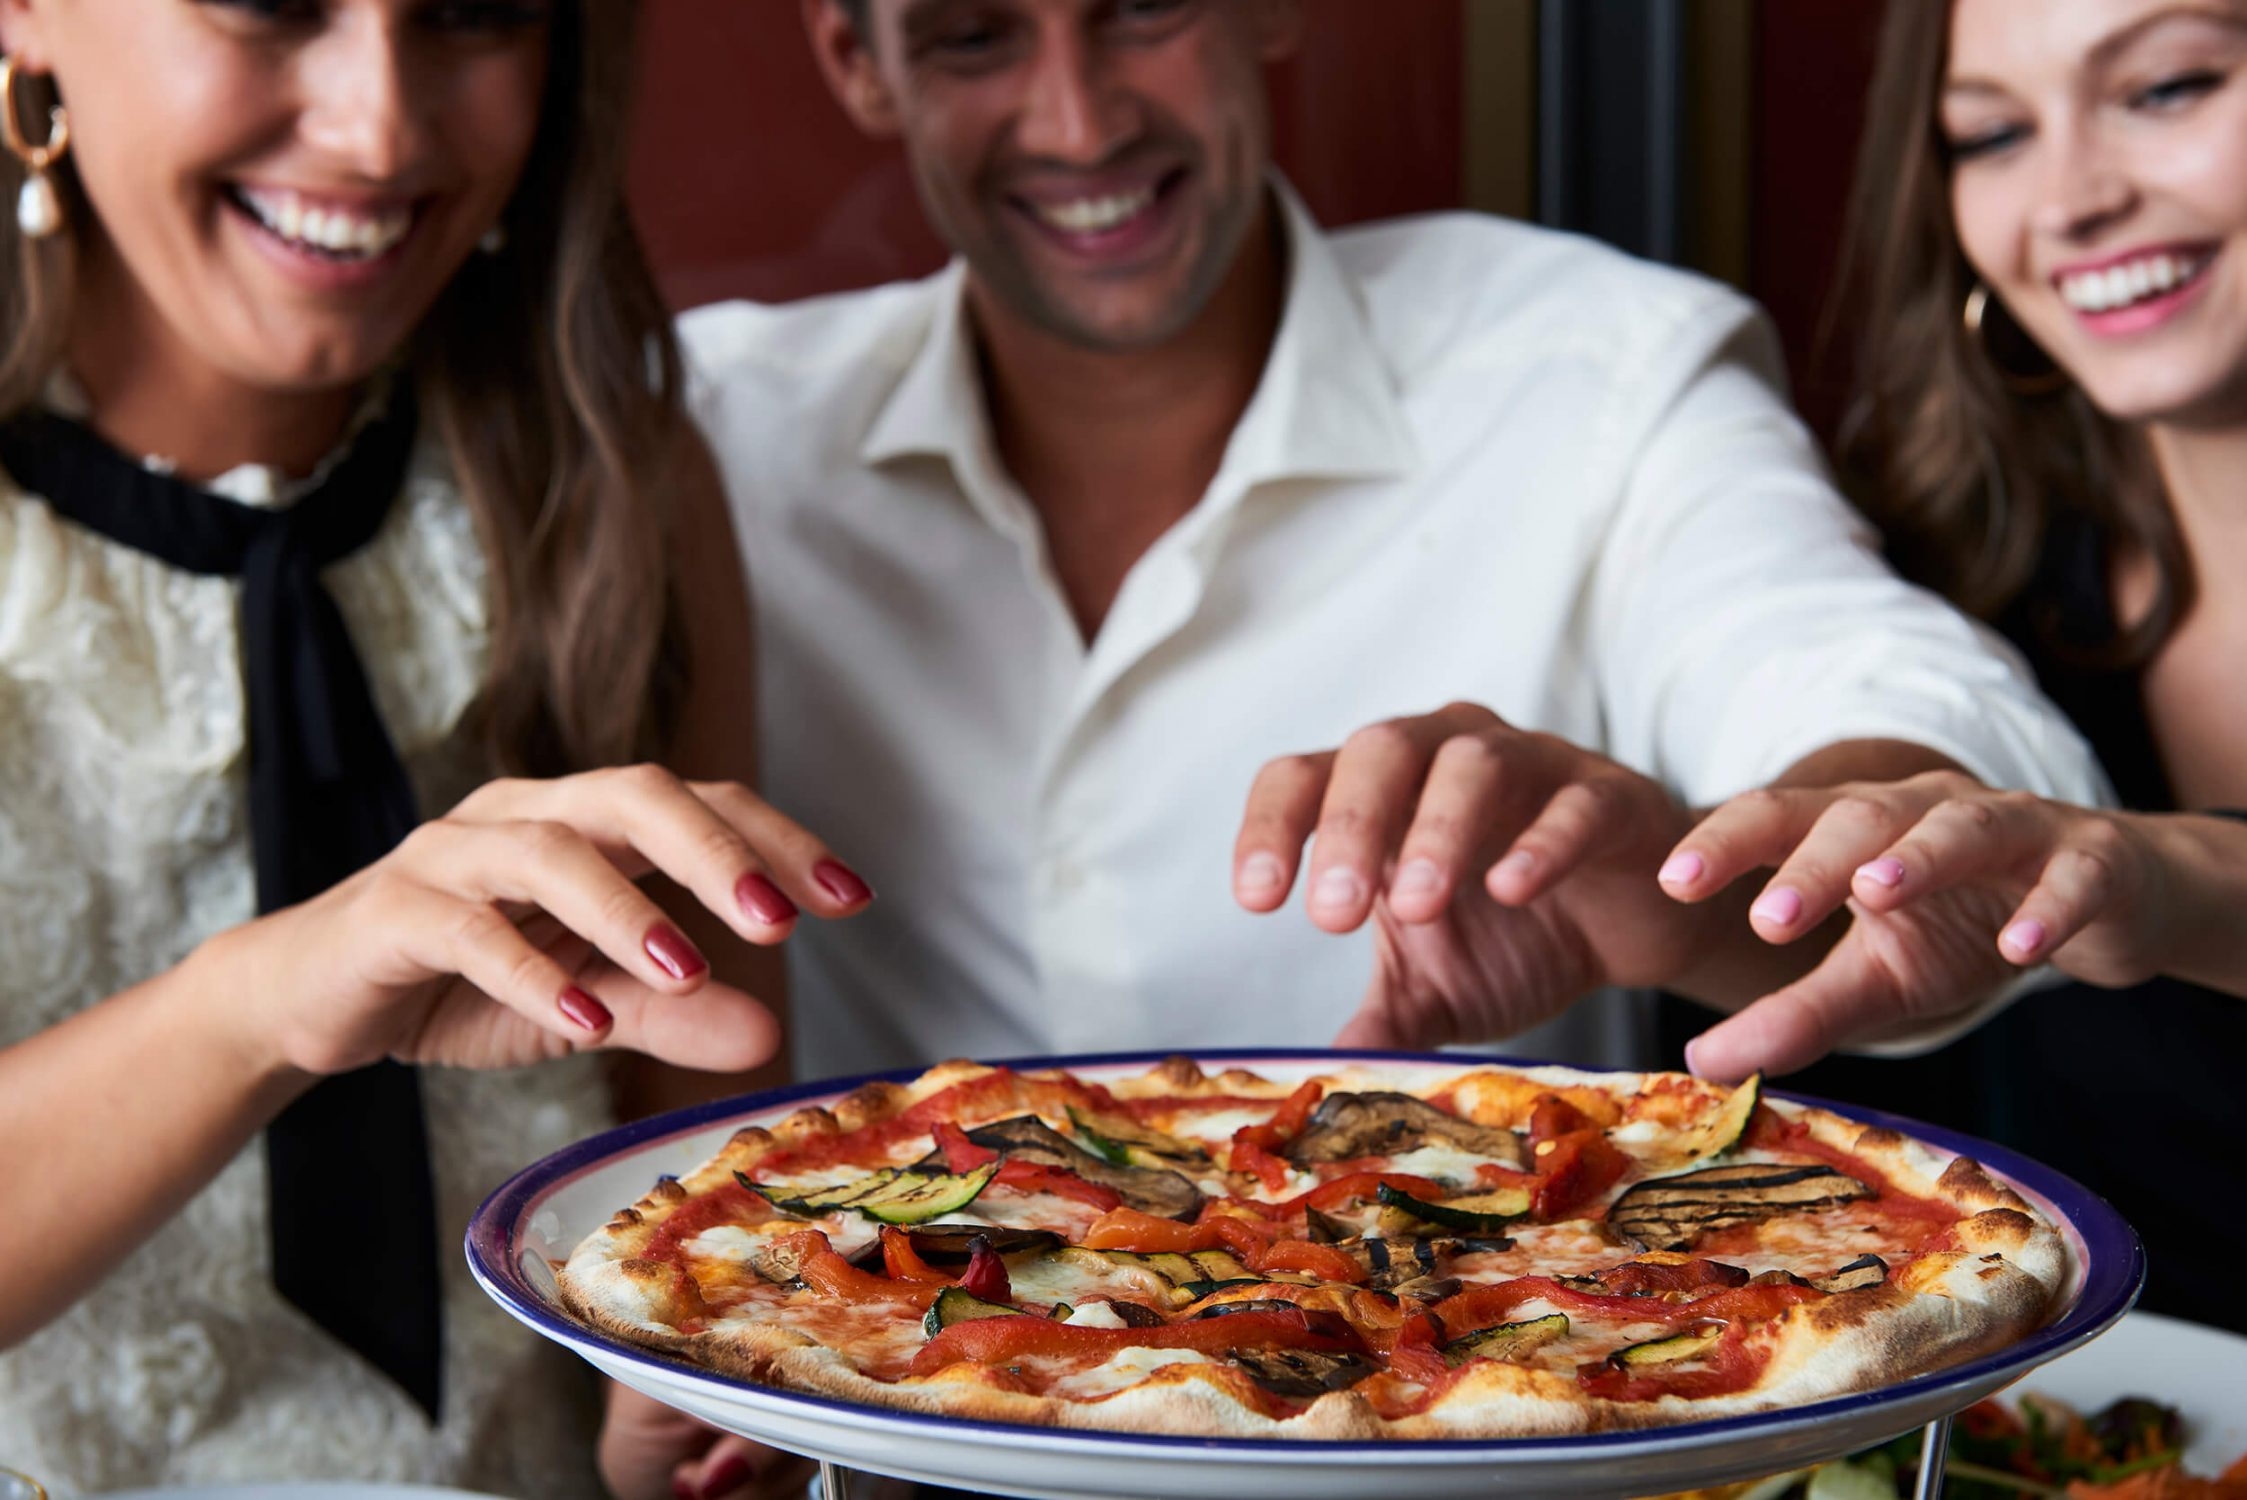 Two woman and a man simultaneously reaching for pizza.